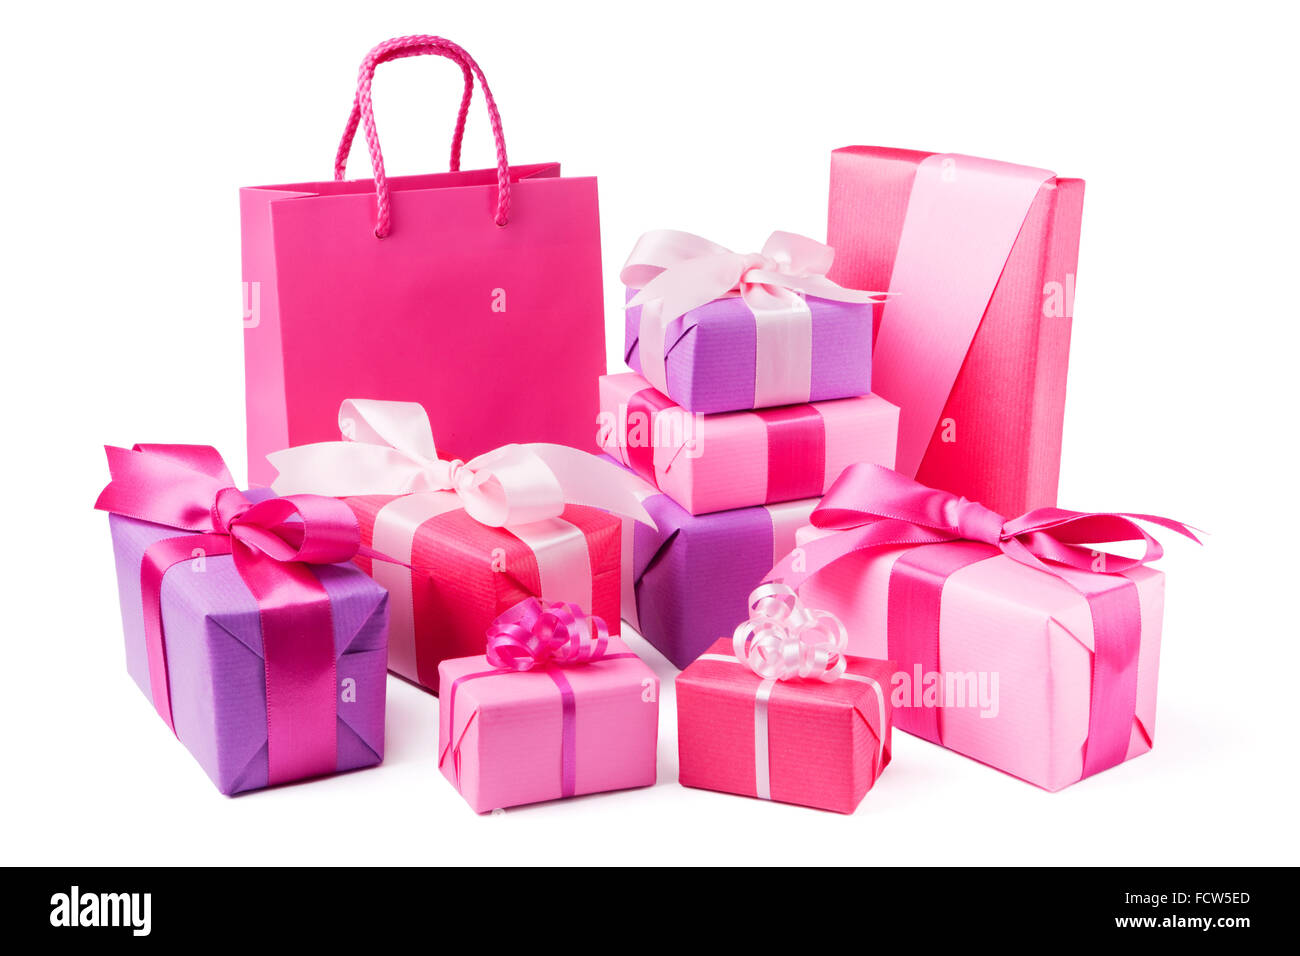 A collection of pink and purple Valentine's gifts with satin ribbons. - Stock Image